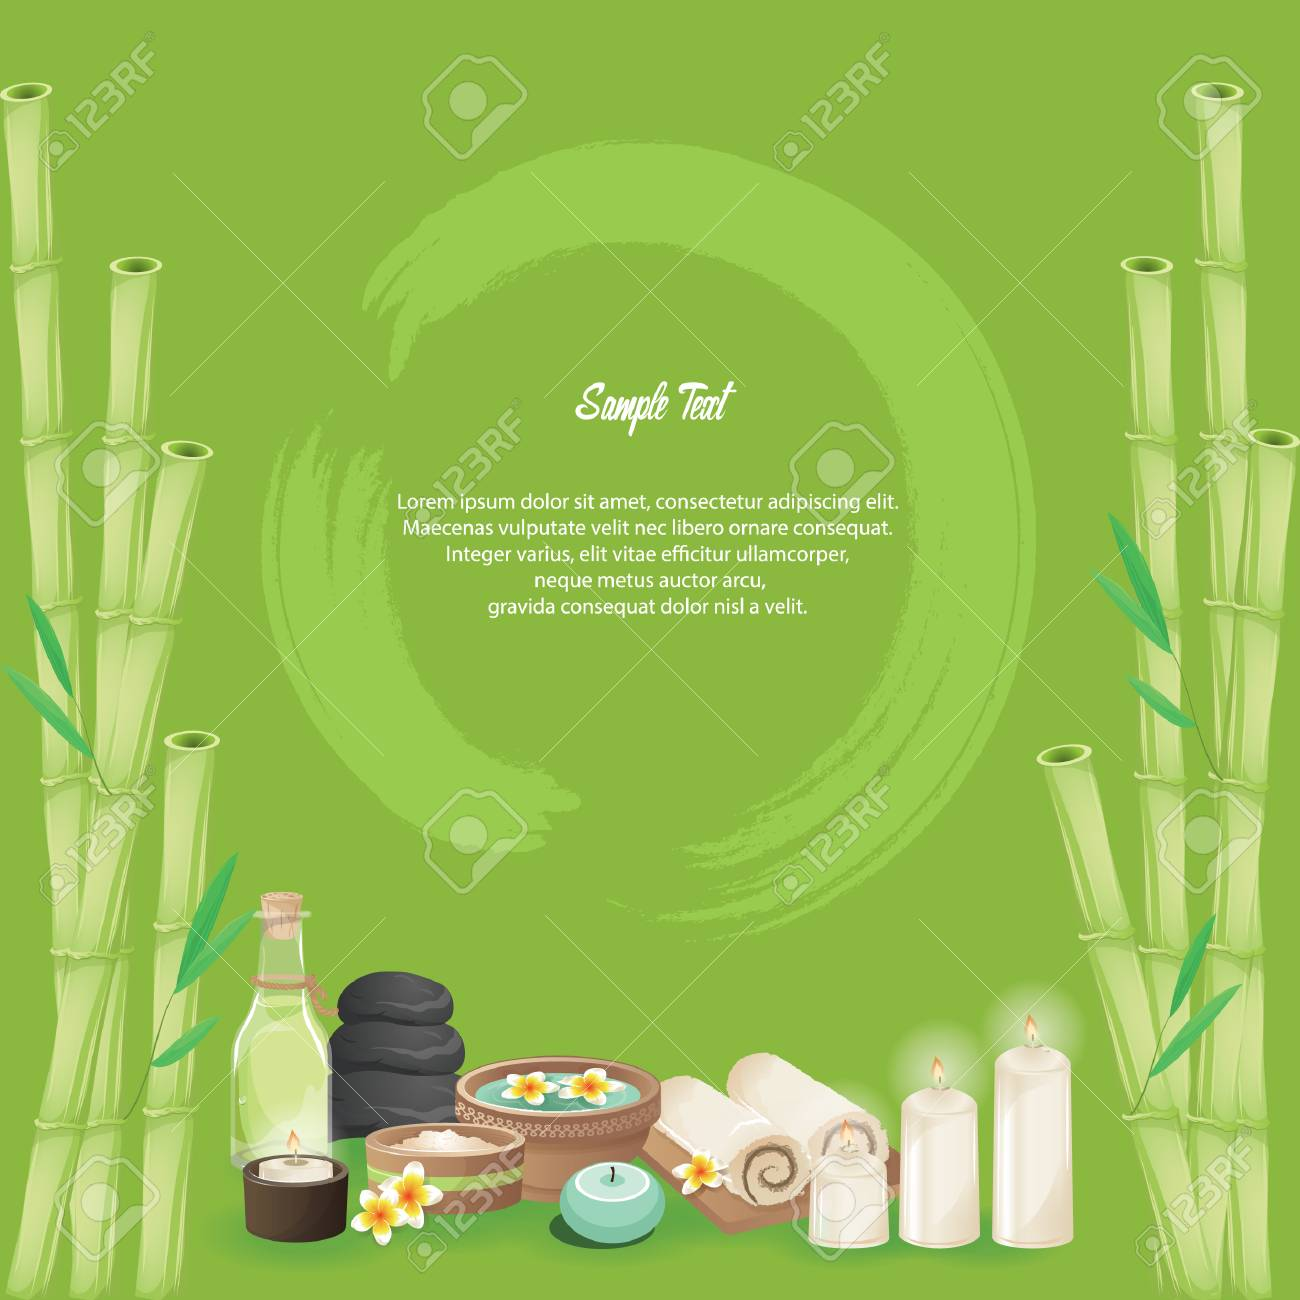 spa themed template - 106671970